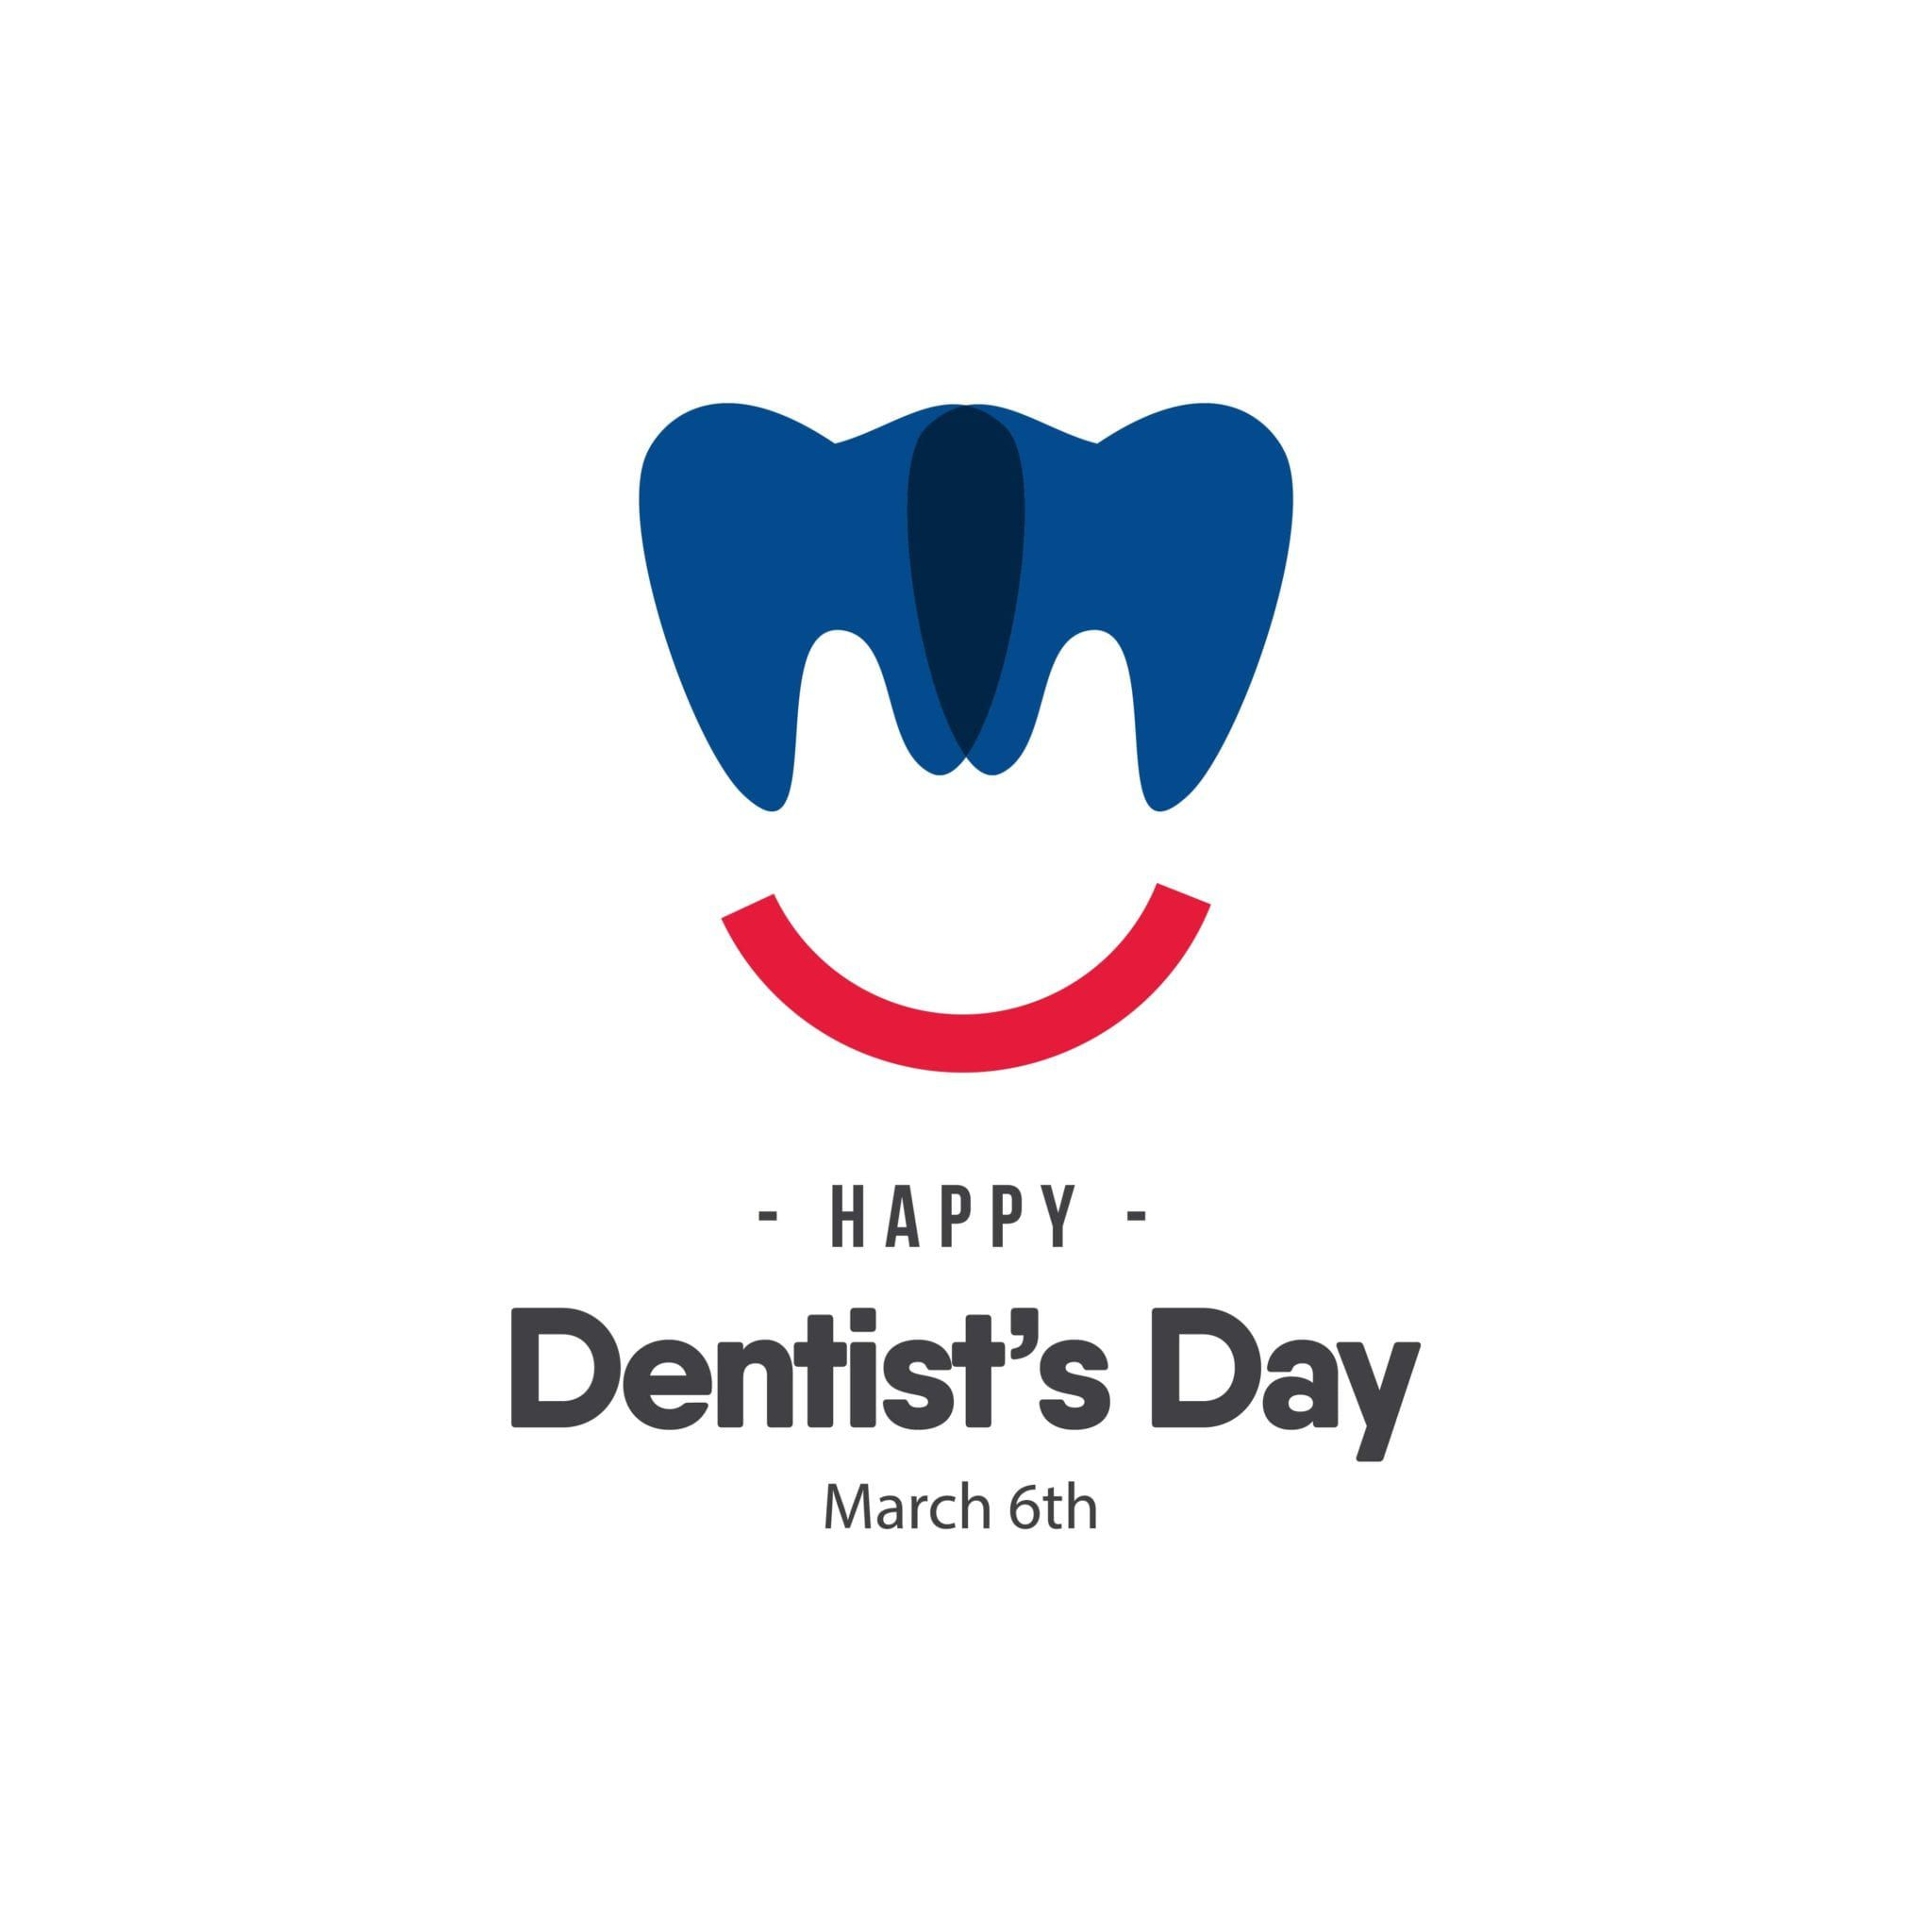 March 6th is National Dentist's Day